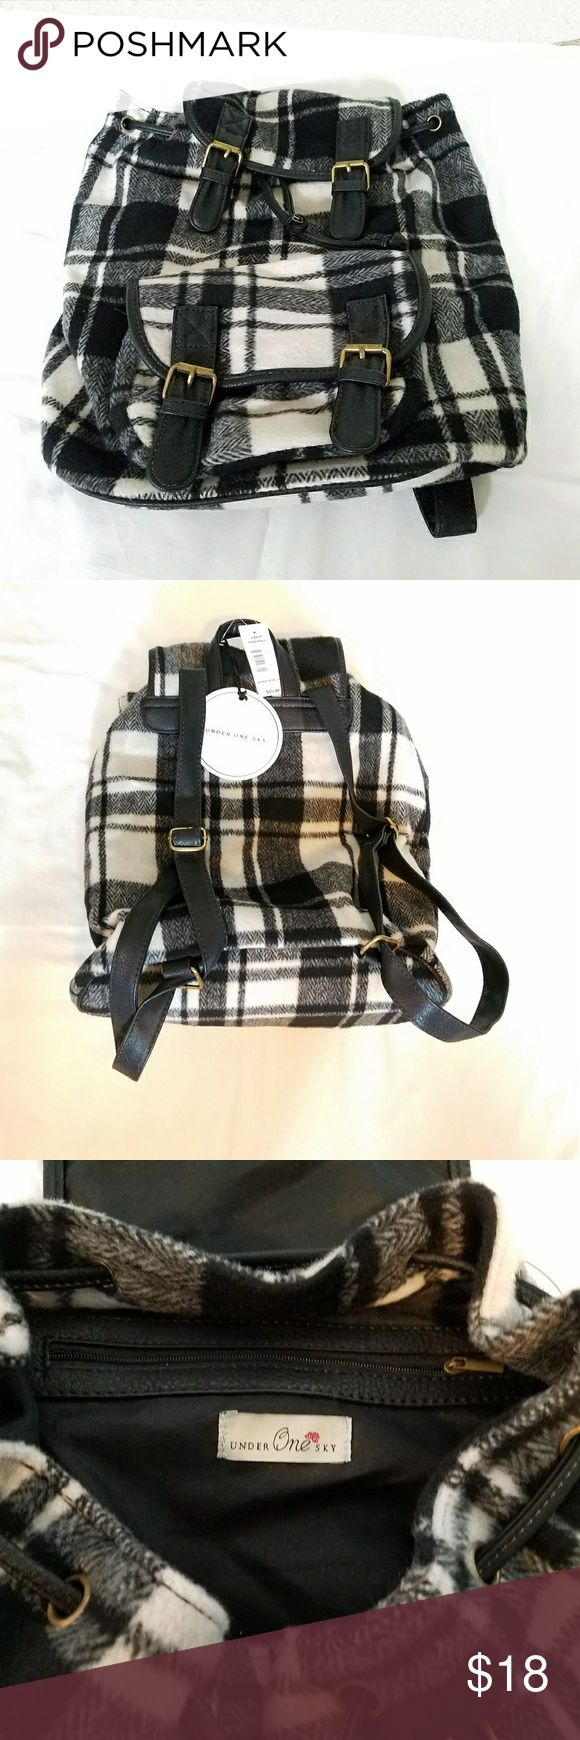 Back pack handbag Brand new Under One Sky back pack/handbag. Cotton shell and very durable..It has a flap and drawstring closure to keep your stuff secure, interior pocket, front pouch pockets, adjustable shoulder strap. This back pack features a chic plaid print.. new with tag.. Under One Sky Bags Backpacks